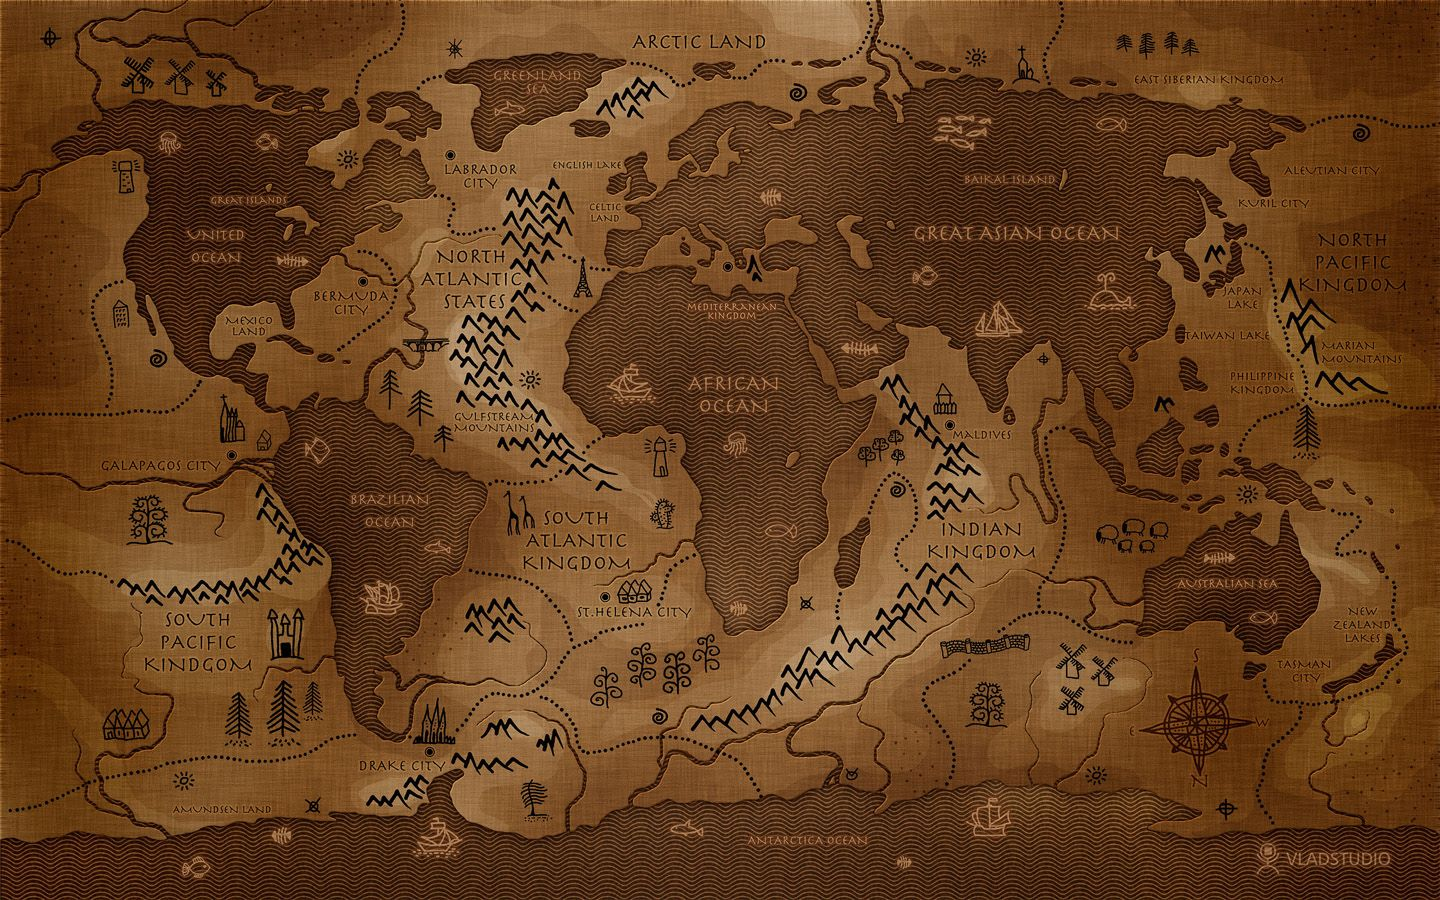 Map of the world if the continents were oceans sweeeet logans map of the world if the continents were oceans sweeeet gumiabroncs Image collections